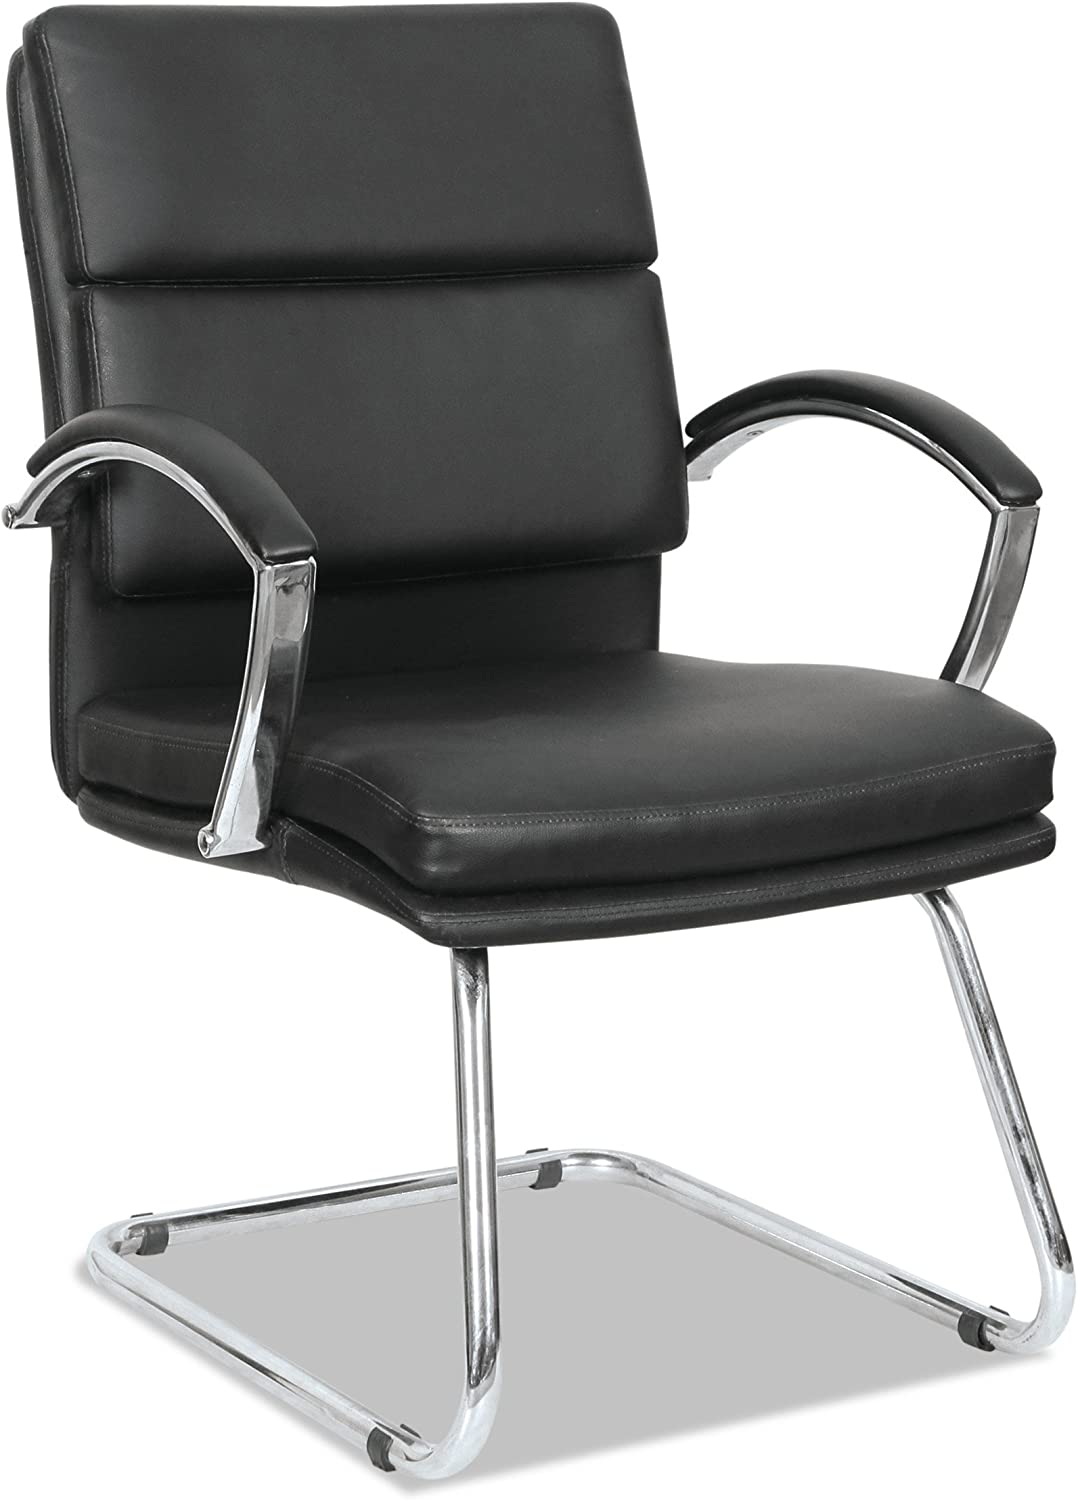 Alera NR4319 Neratoli Series Slim Profile Guest Chair, Black Soft Leather Chrome Frame